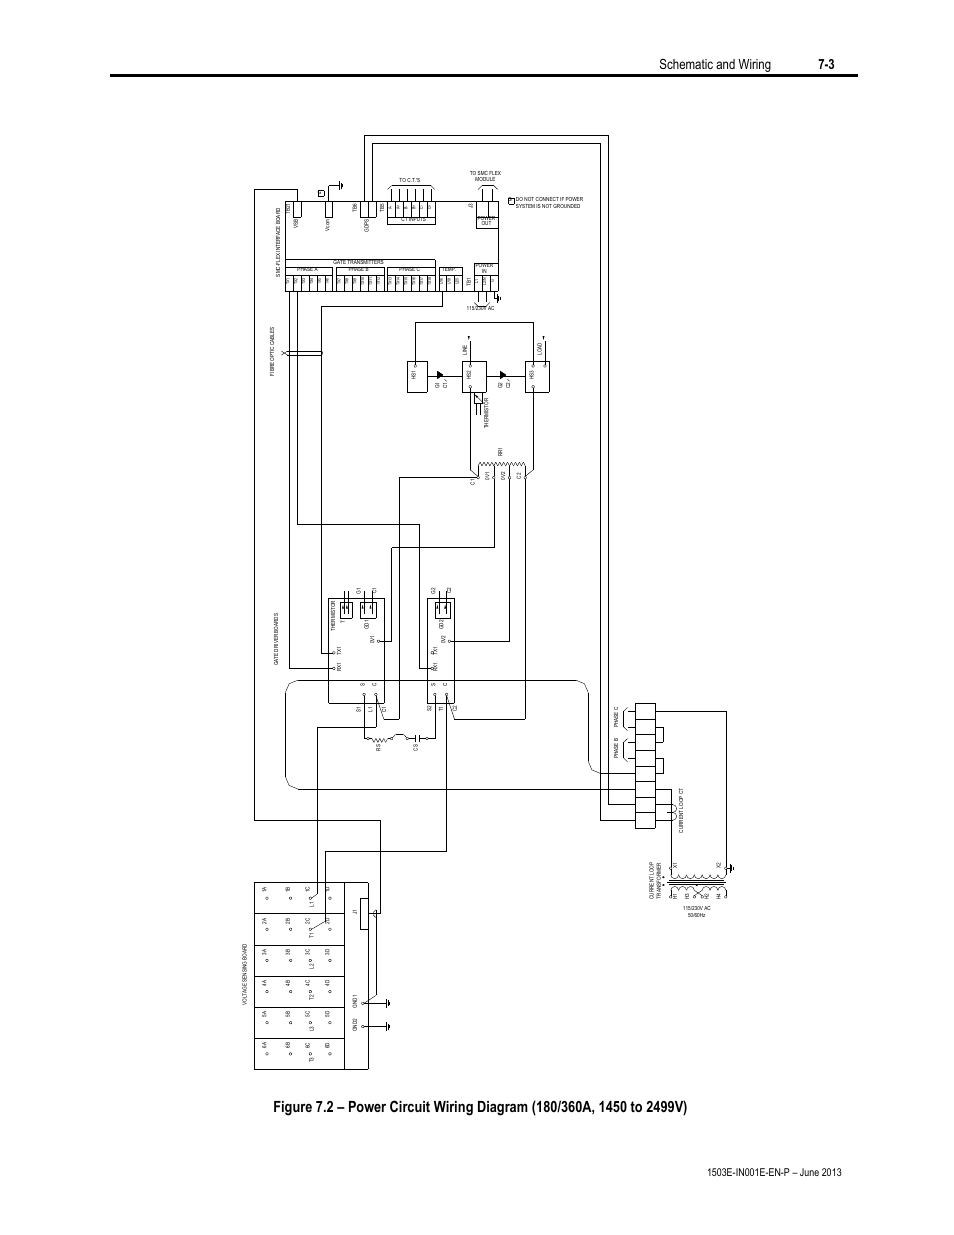 Related with smc manifold wiring diagram